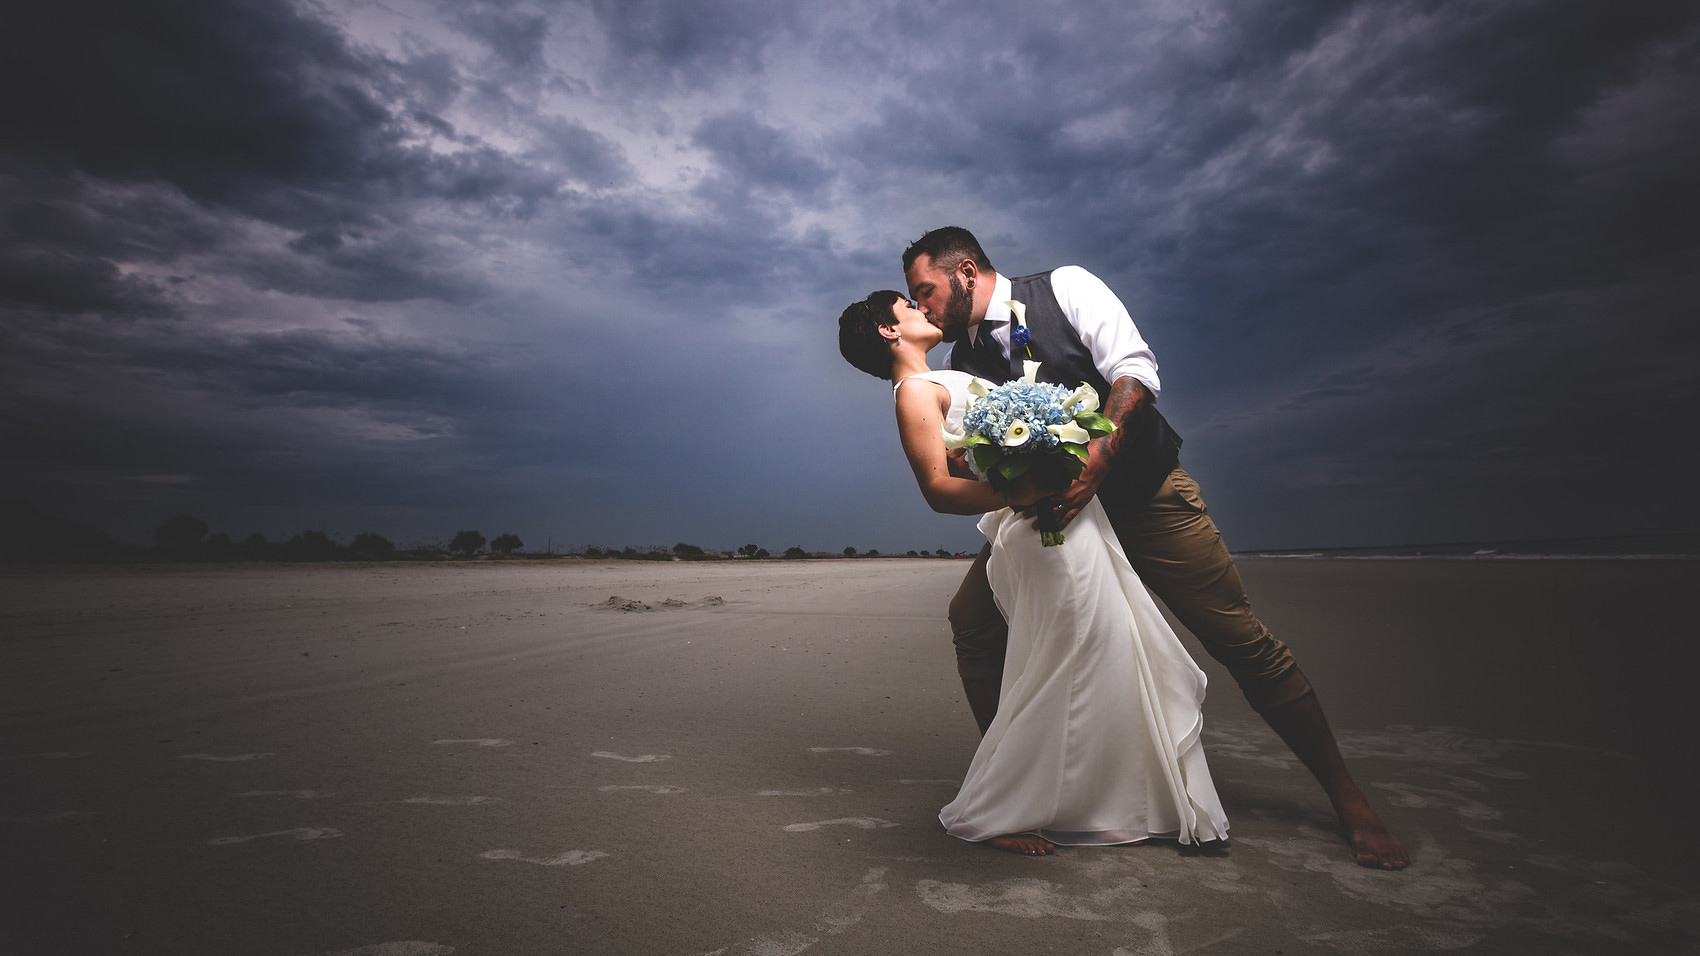 adam-szarmack-atlantic-beach-wedding-photographer-mayport-55.jpg